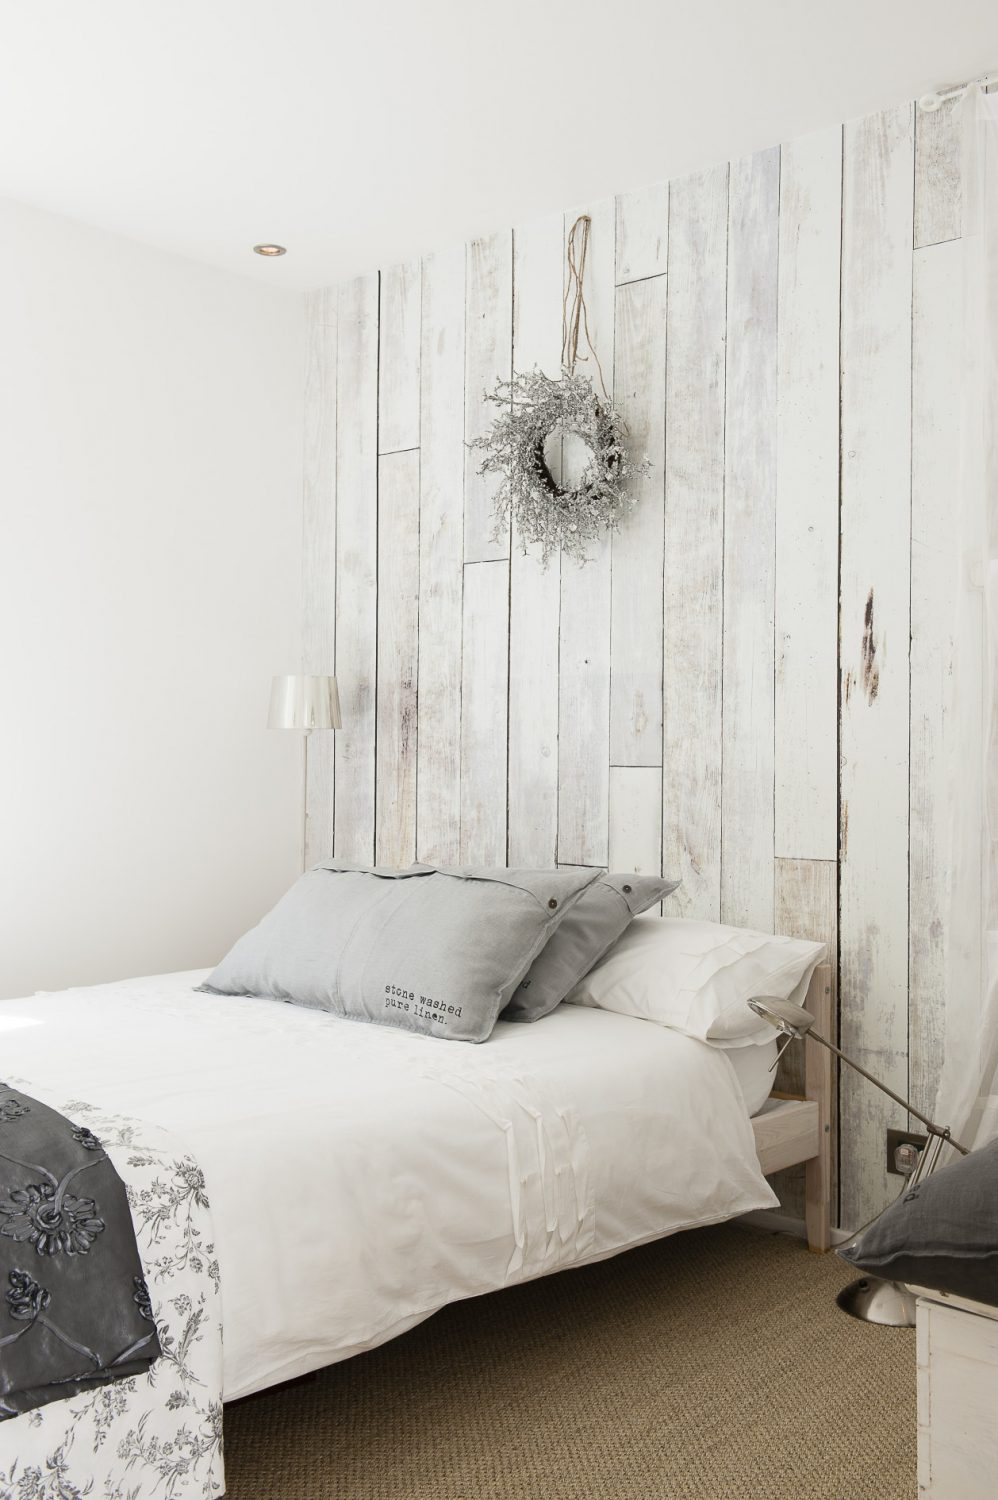 Wood panel effect wallpaper creates a trompe l'oeil on one wall of another guest room